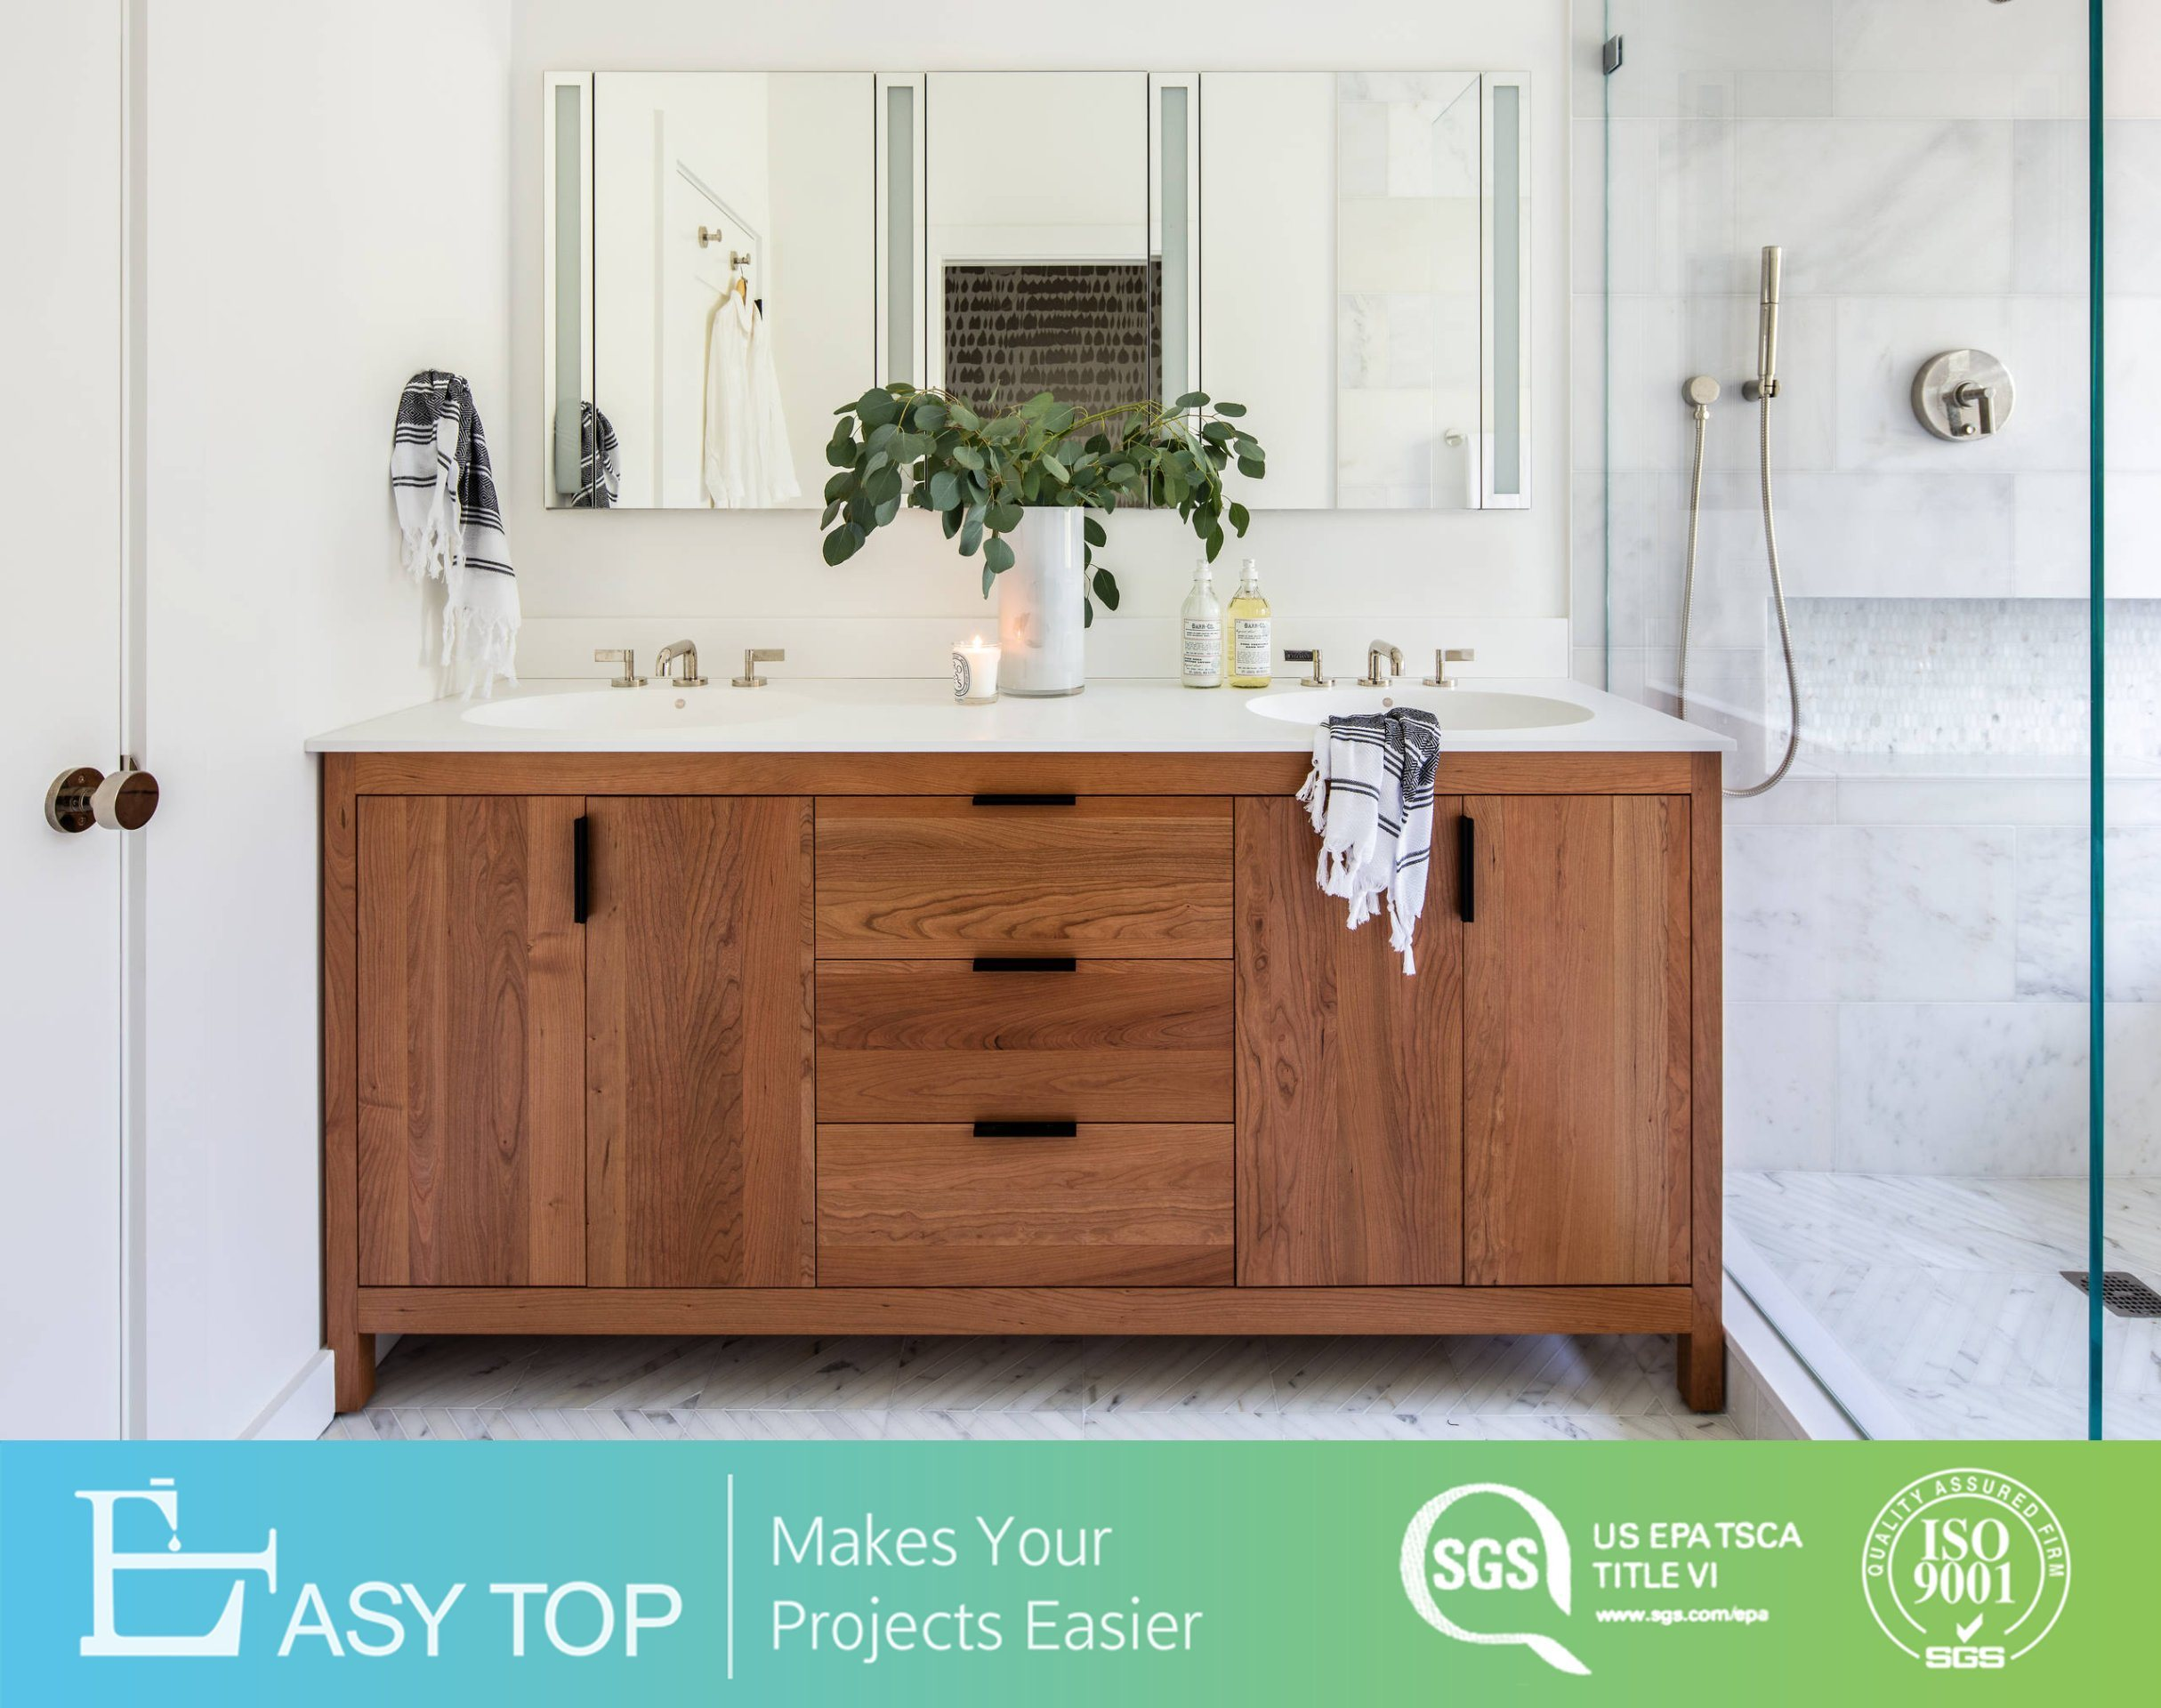 Floor Mounted Modern Solid Wood Cabinet Wholesale Wooden Bathroom Vanities With Legs China Vanity Bathroom Double Sink Double Bathroom Vanity Made In China Com